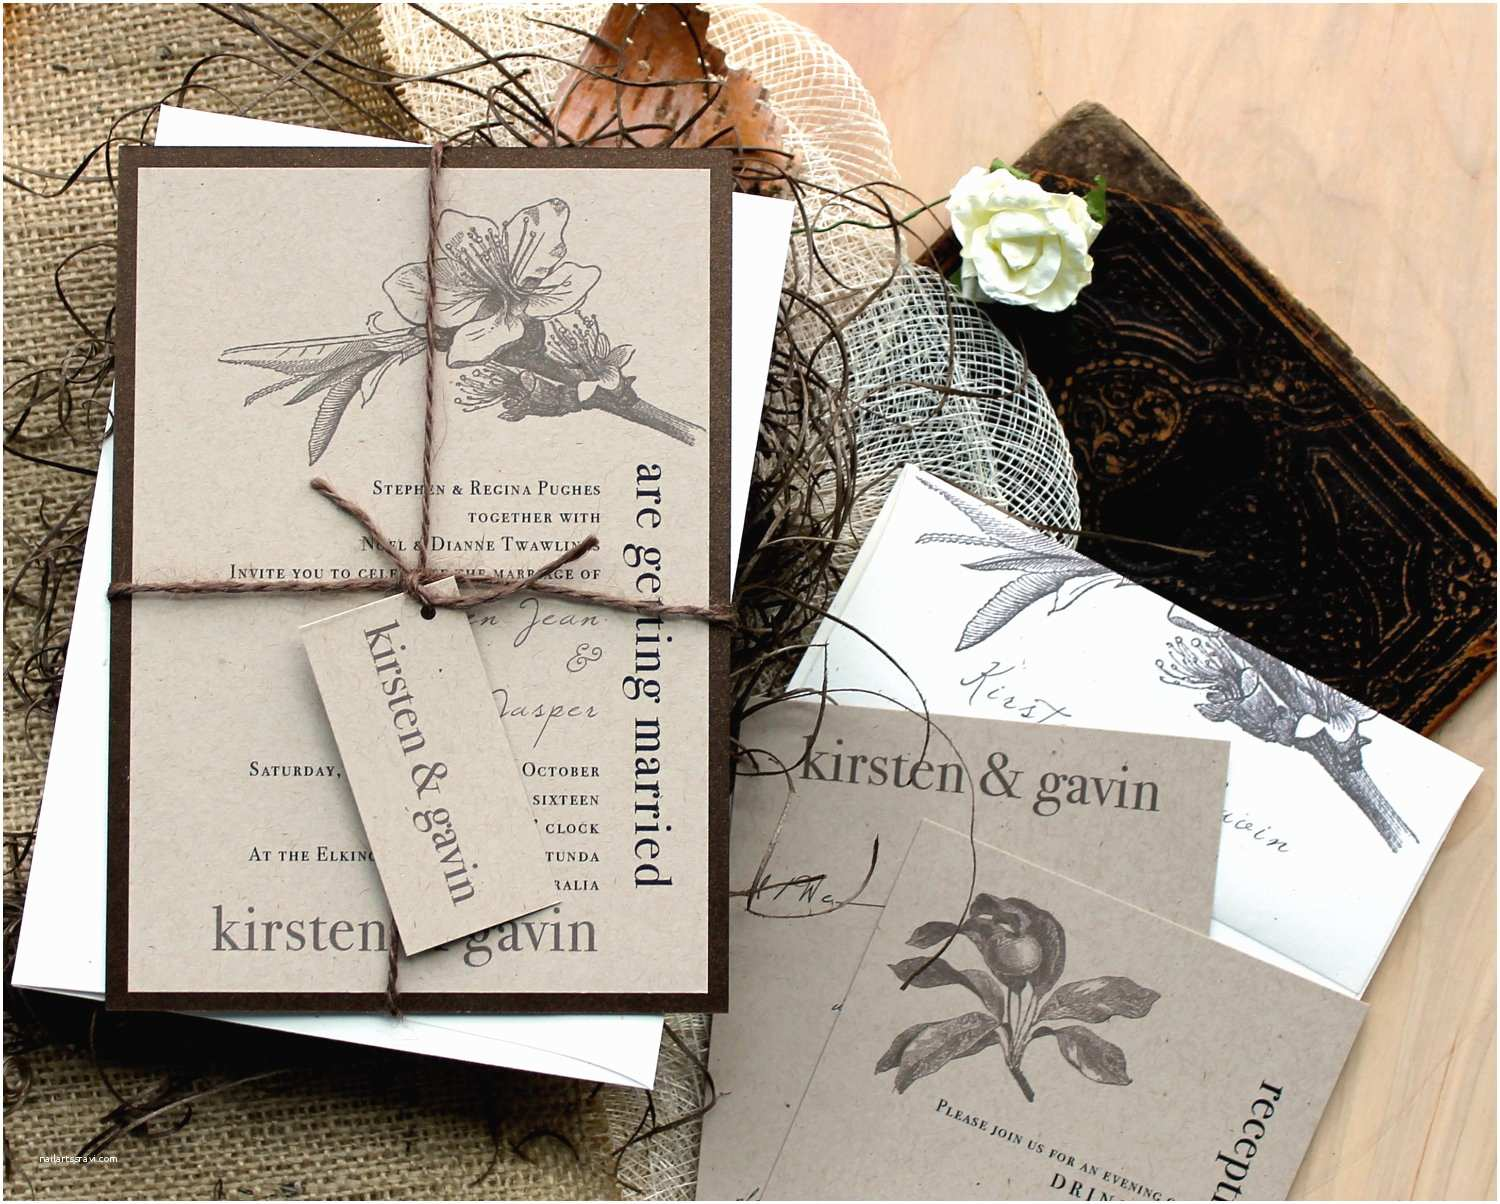 Country Chic Wedding Invitations Rustic & Chic Wedding Invitations Farm Wedding Country